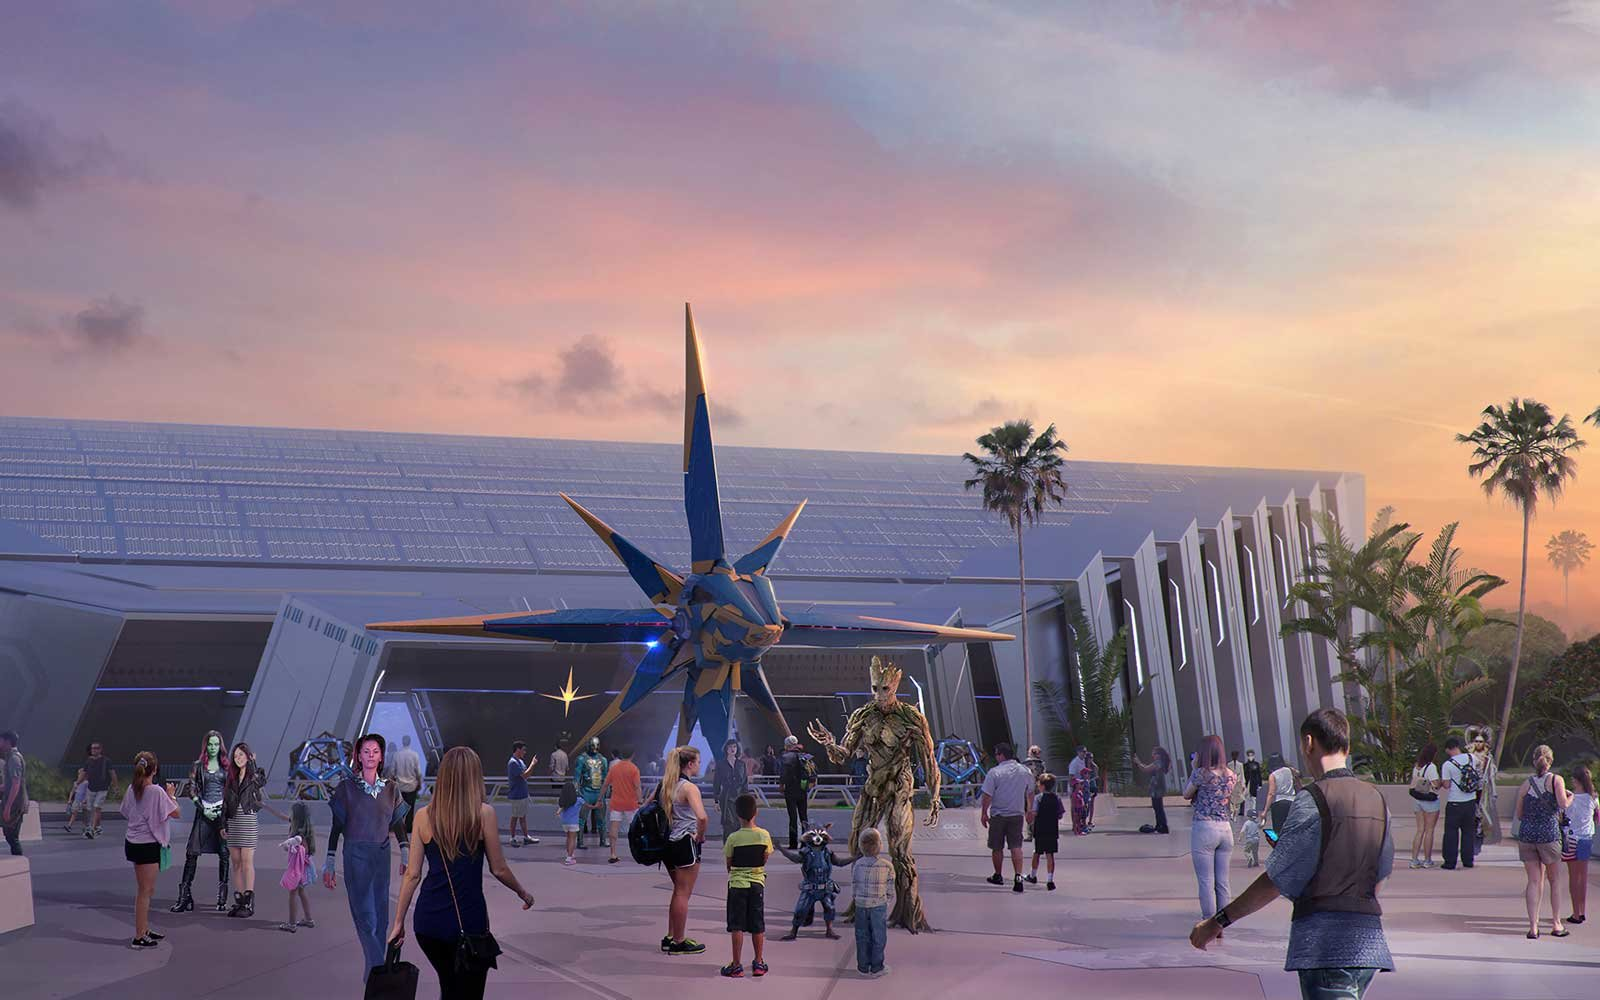 Disney Is Re-imagining the Roller Coaster With Epcot's New Guardians of the Galaxy Experience